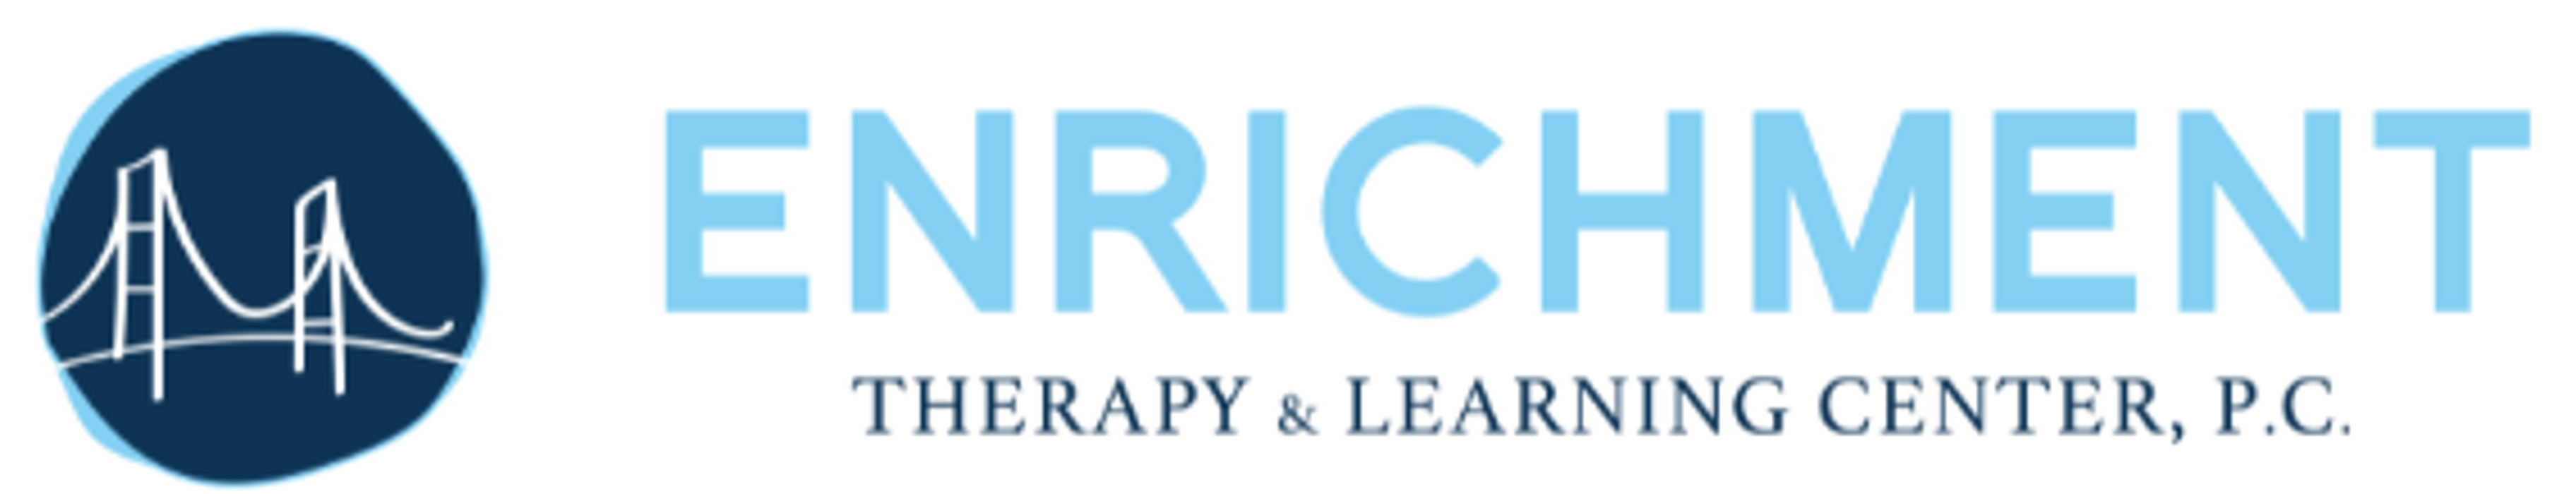 Enrichment Therapy and Learning Center, P.C. - Urbandale, IA